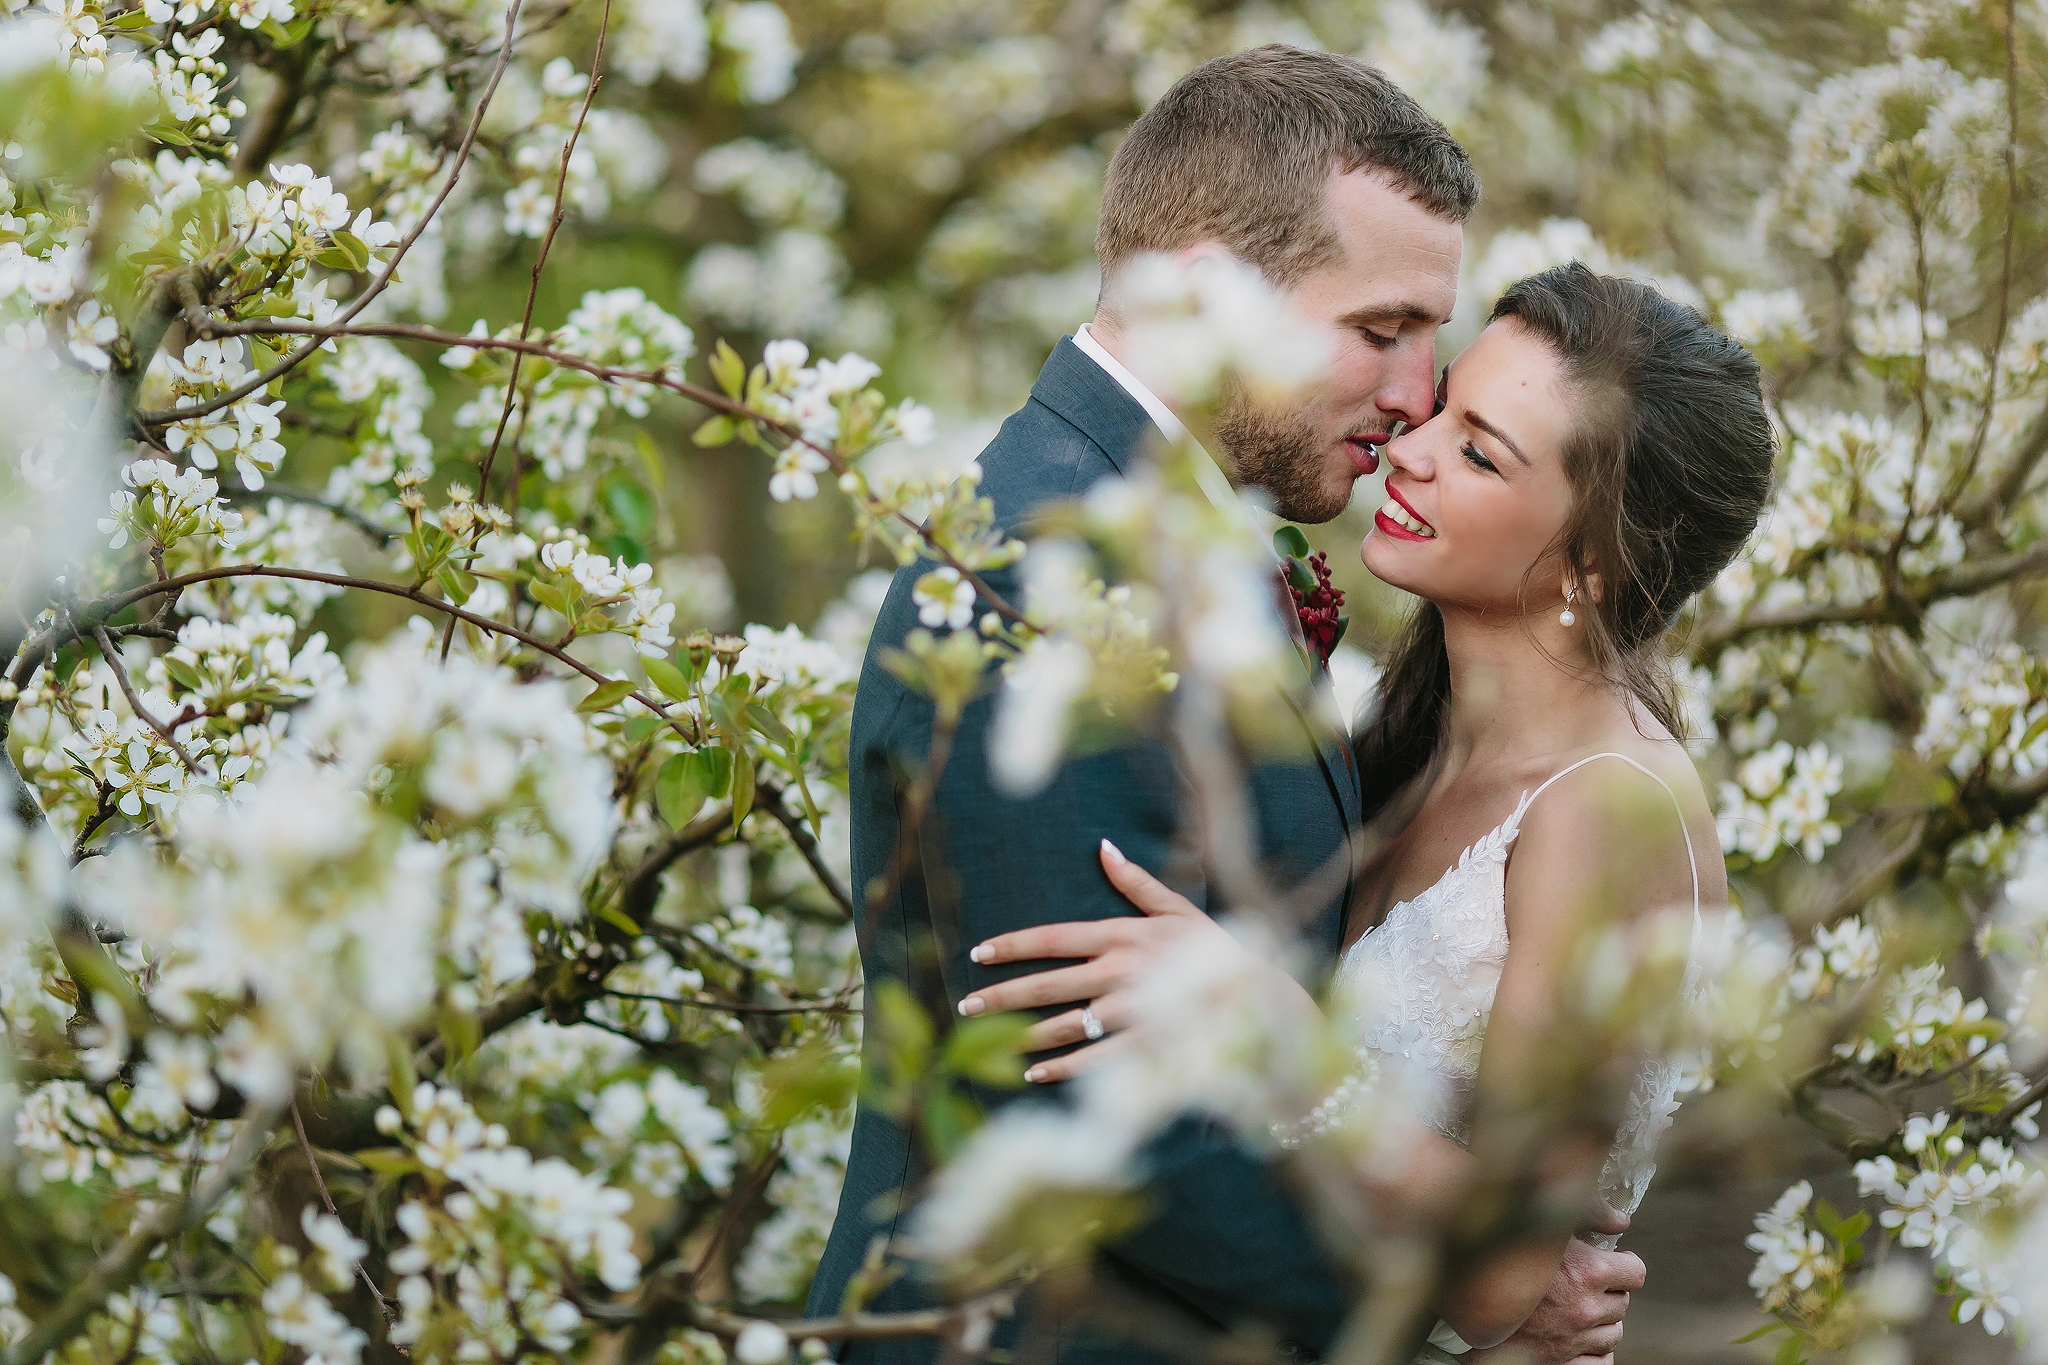 Kiss among the blossoms - photo by Ruan Redelinghuys Photography